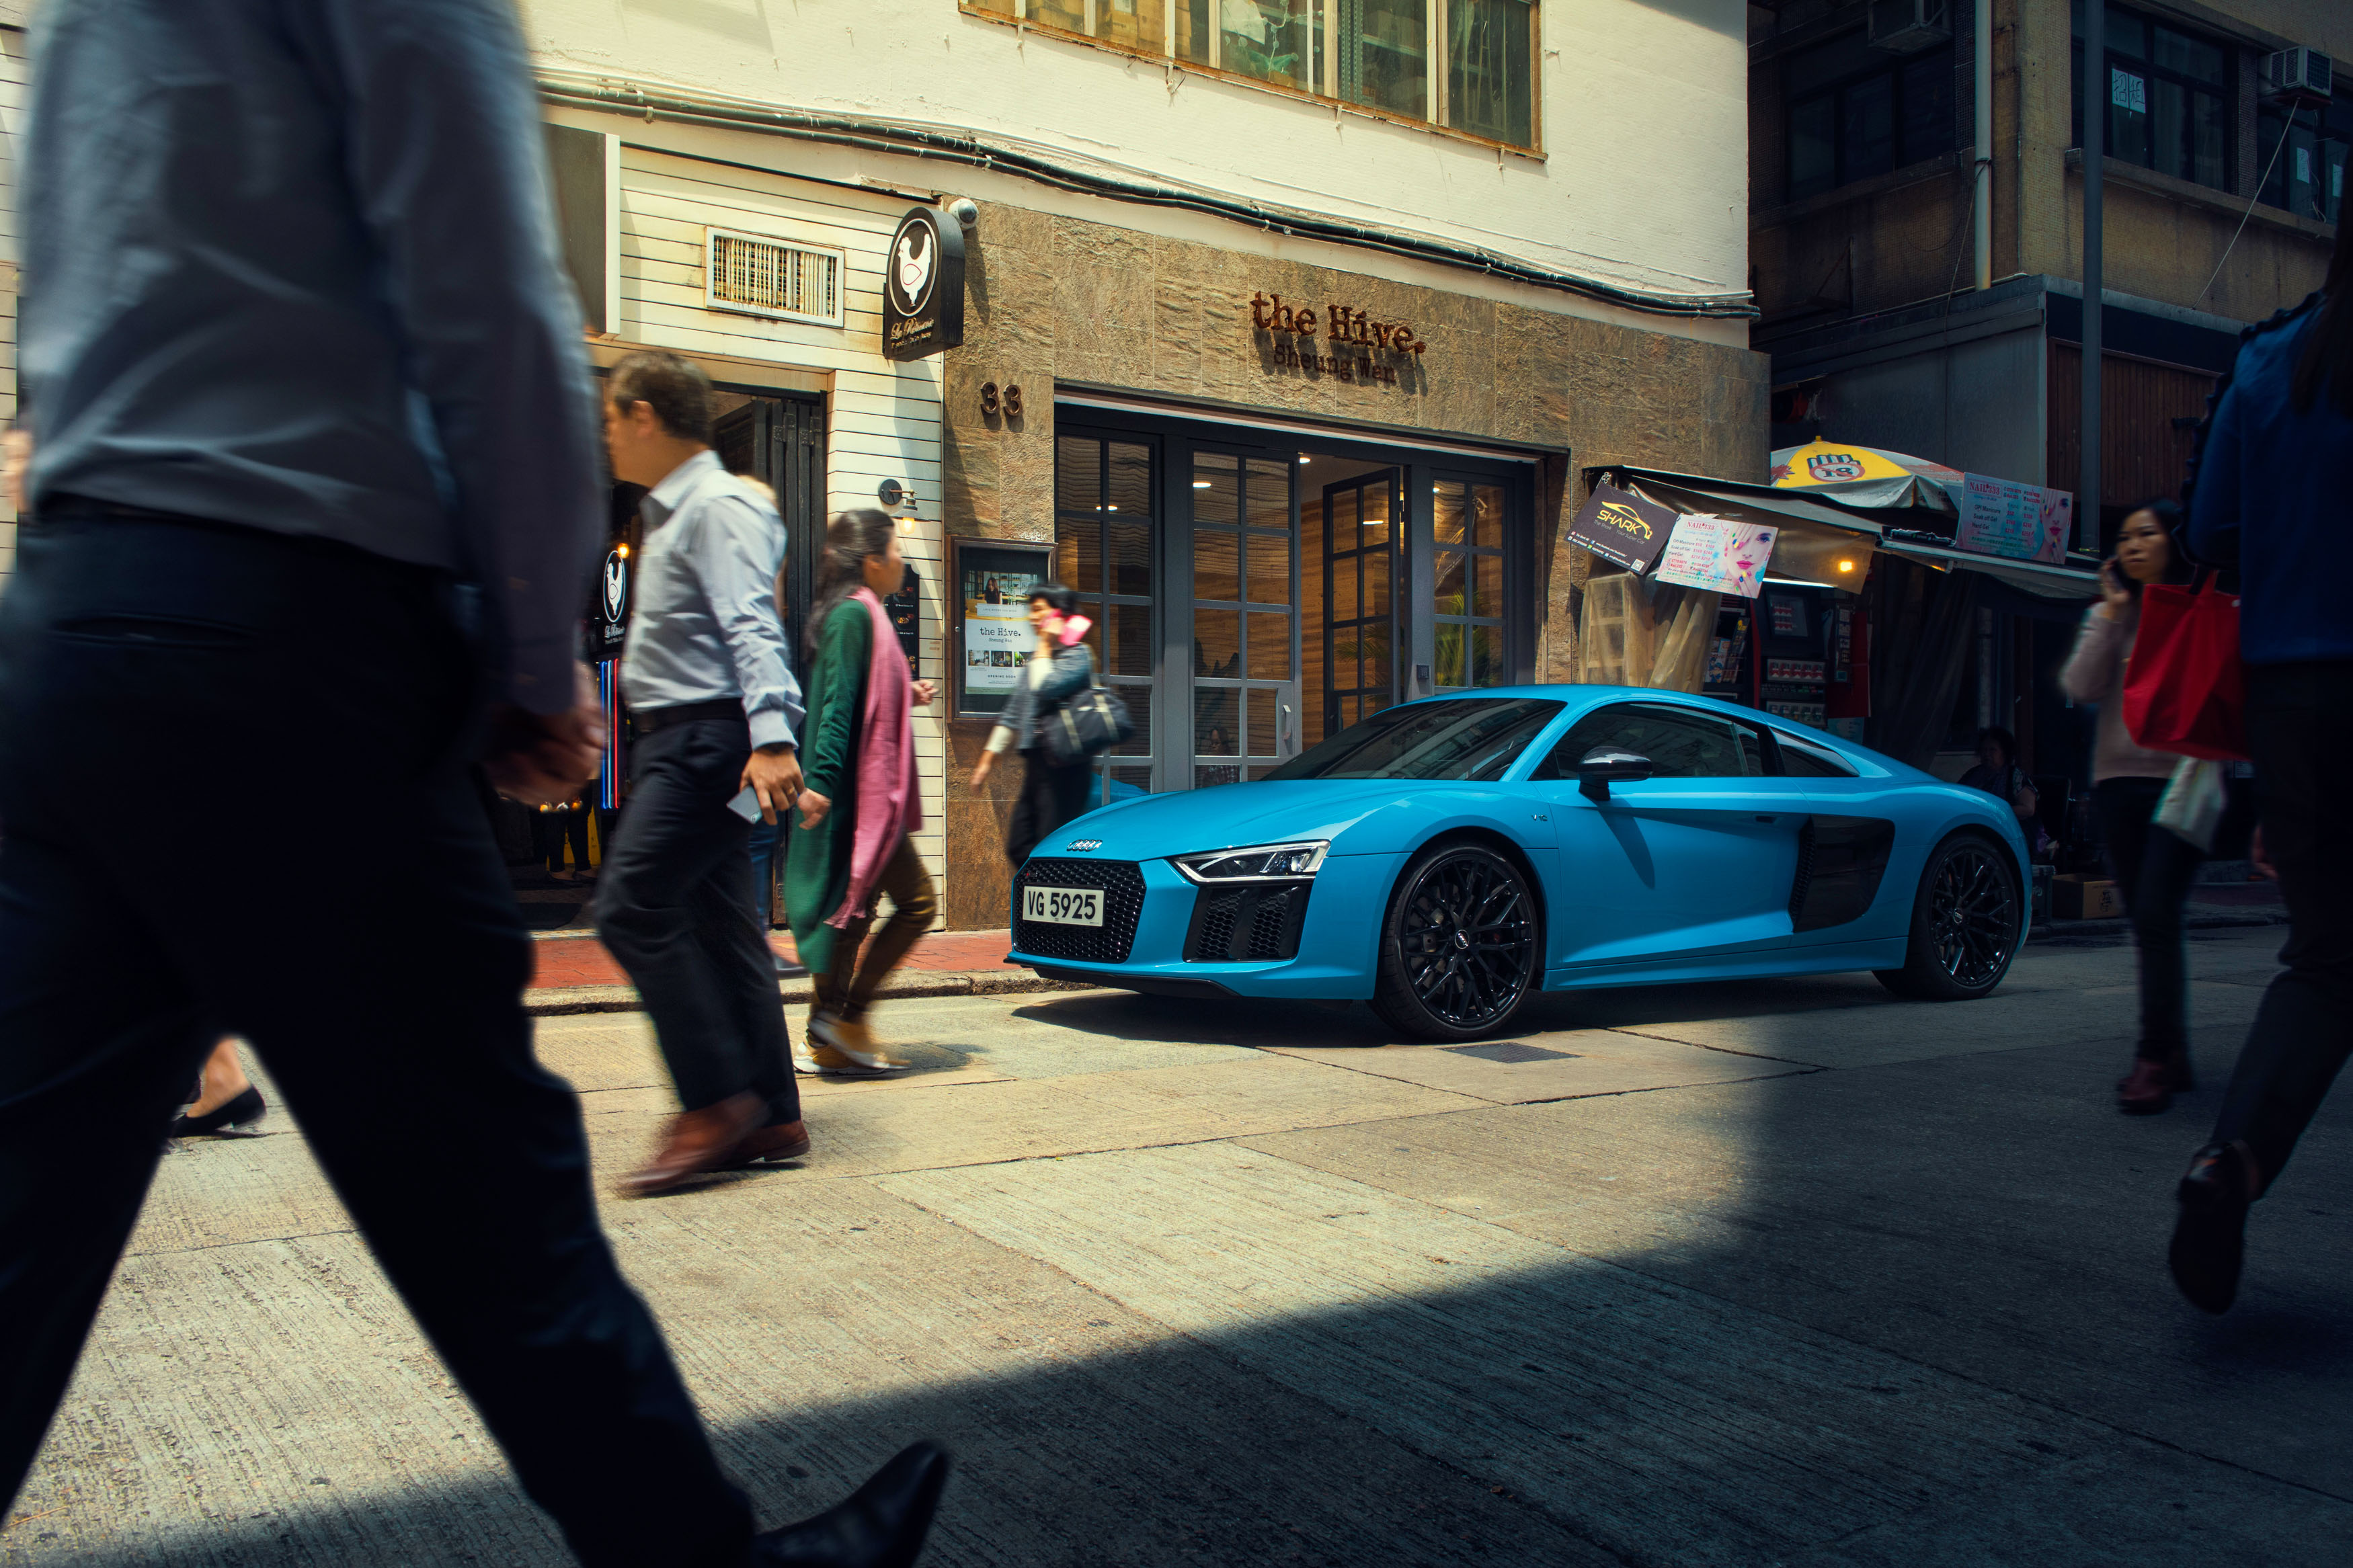 migs-foto-cgi-photographer-automotive-car-hong-kong-michael-lee-advtertising-commercial-photography-audi-r8-smurf-blue-2018MIGSLimitedAudiHKR8-visual1_v02